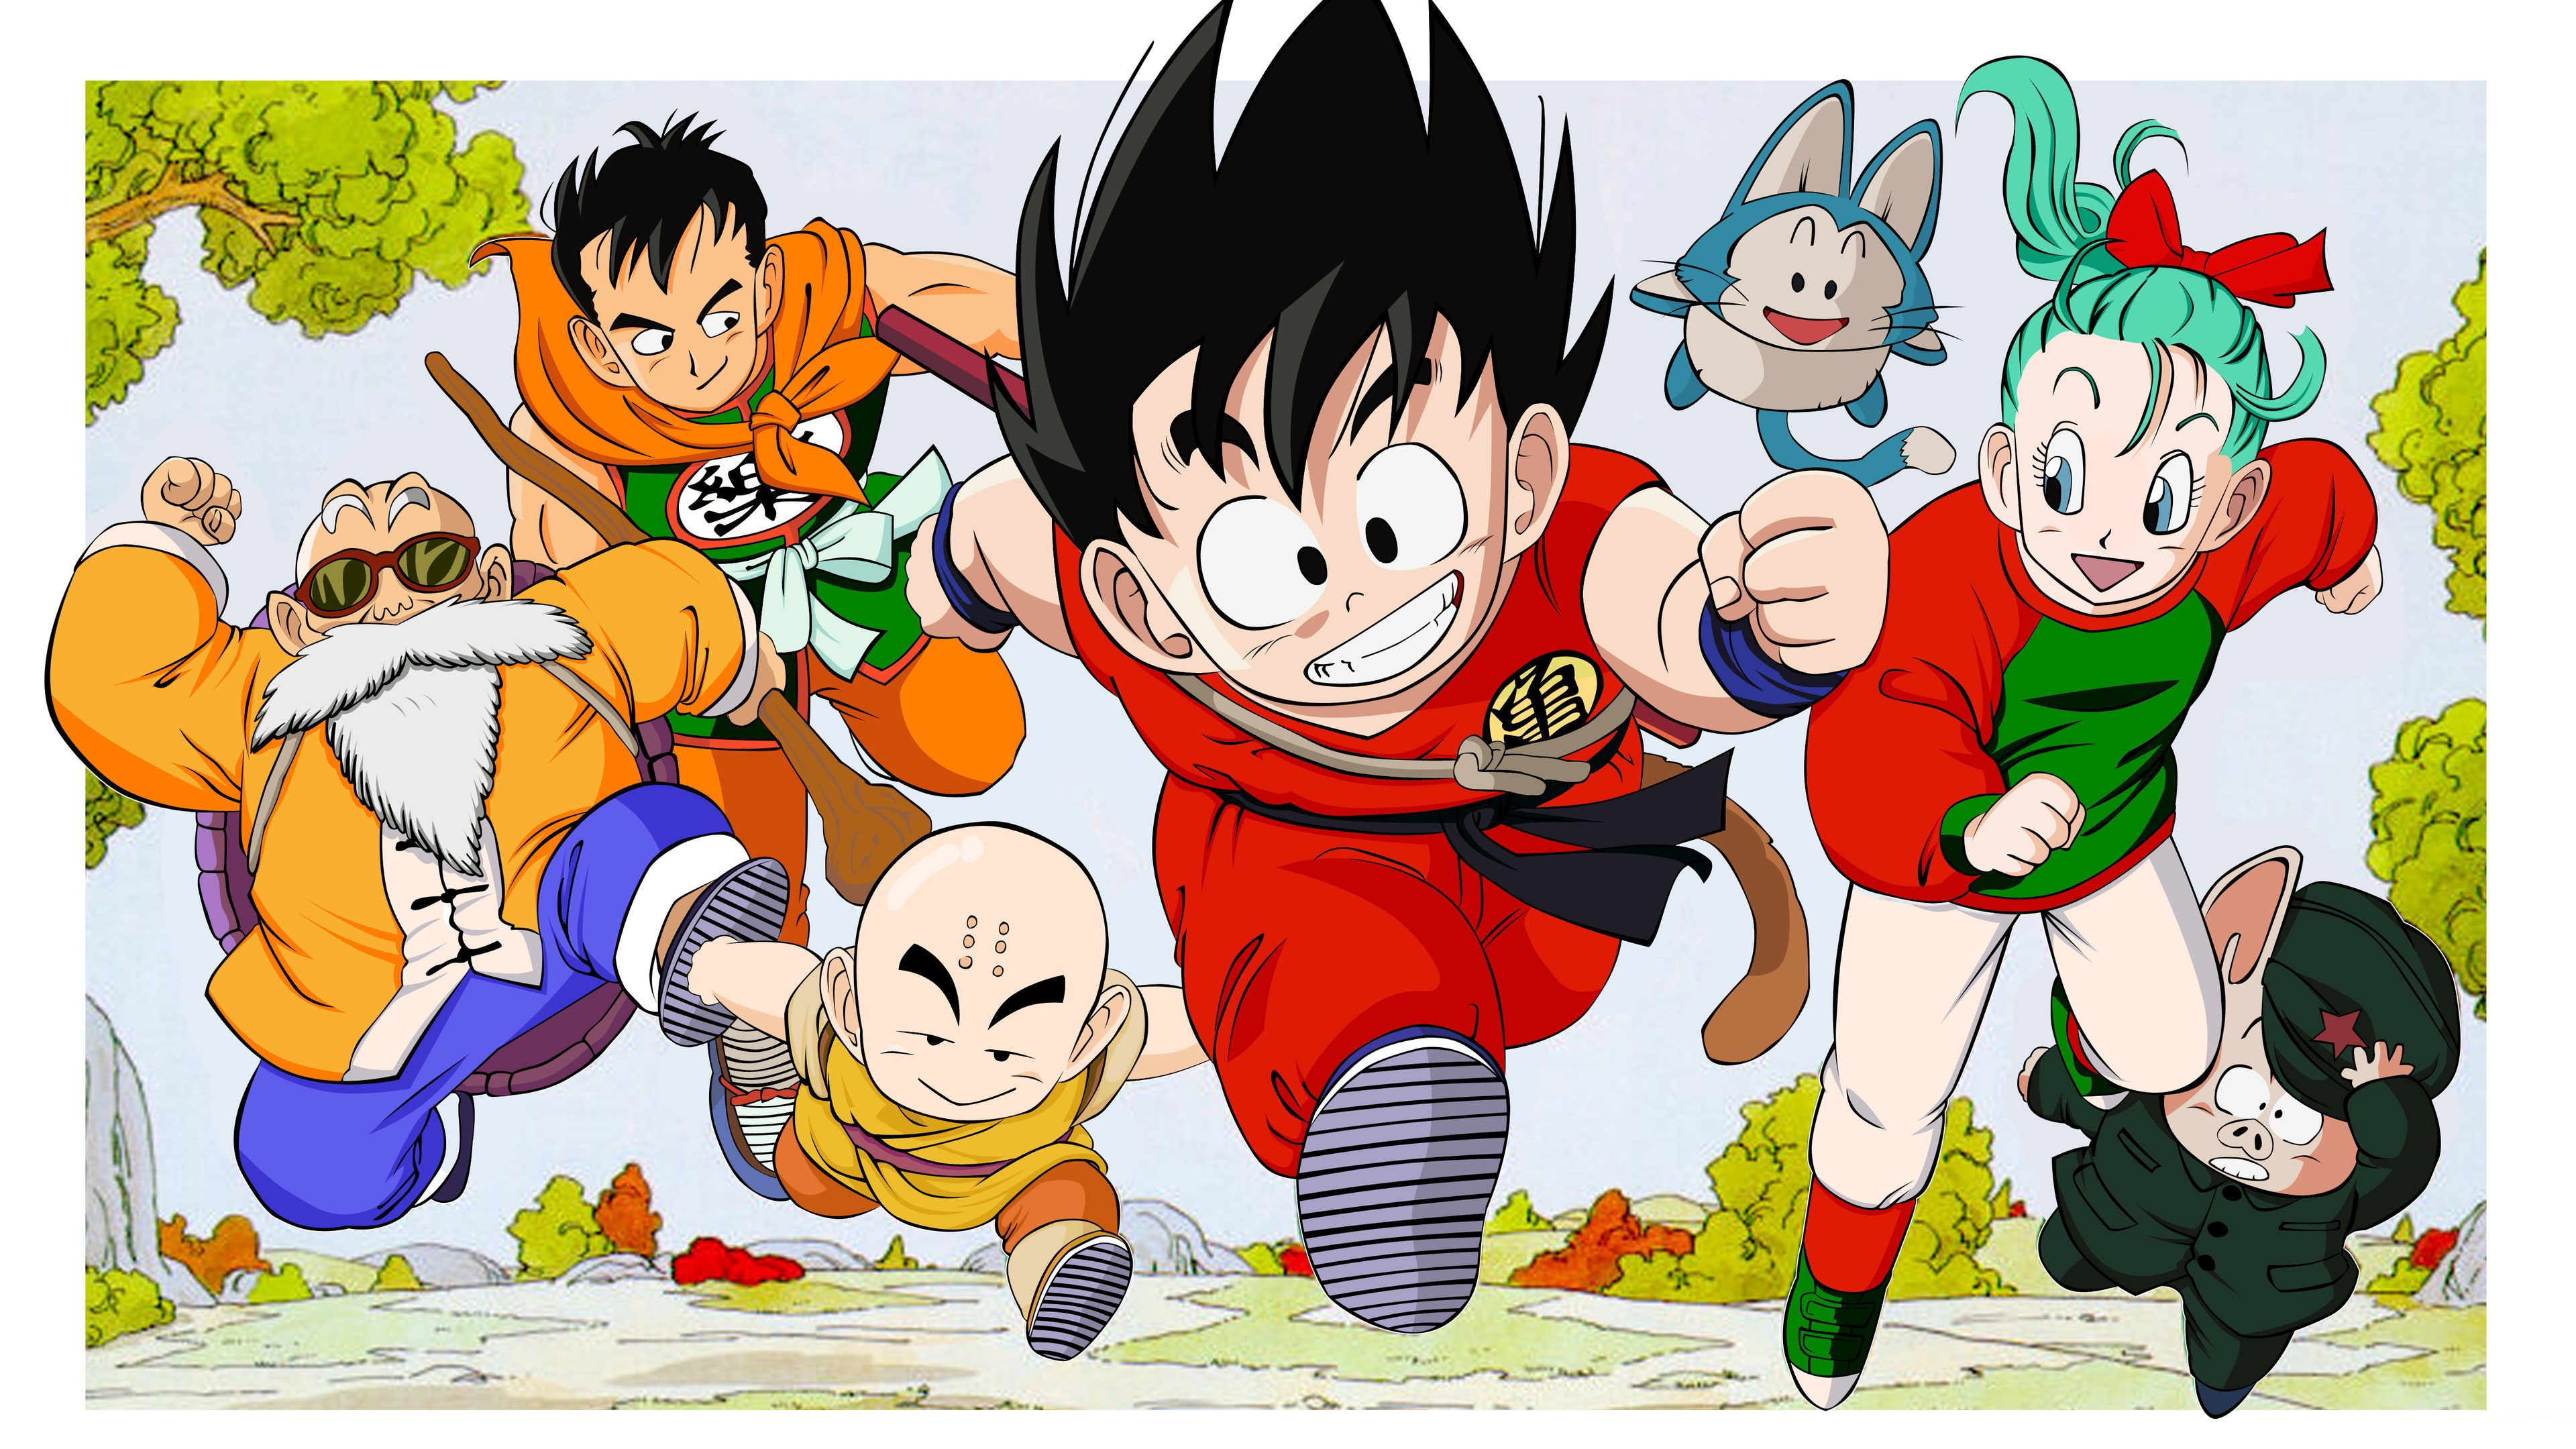 Cute Wallpapers Iphone 6 Plus Wallpaper Dragon Ball Classic Anime 3840x2160 Uhd 4k